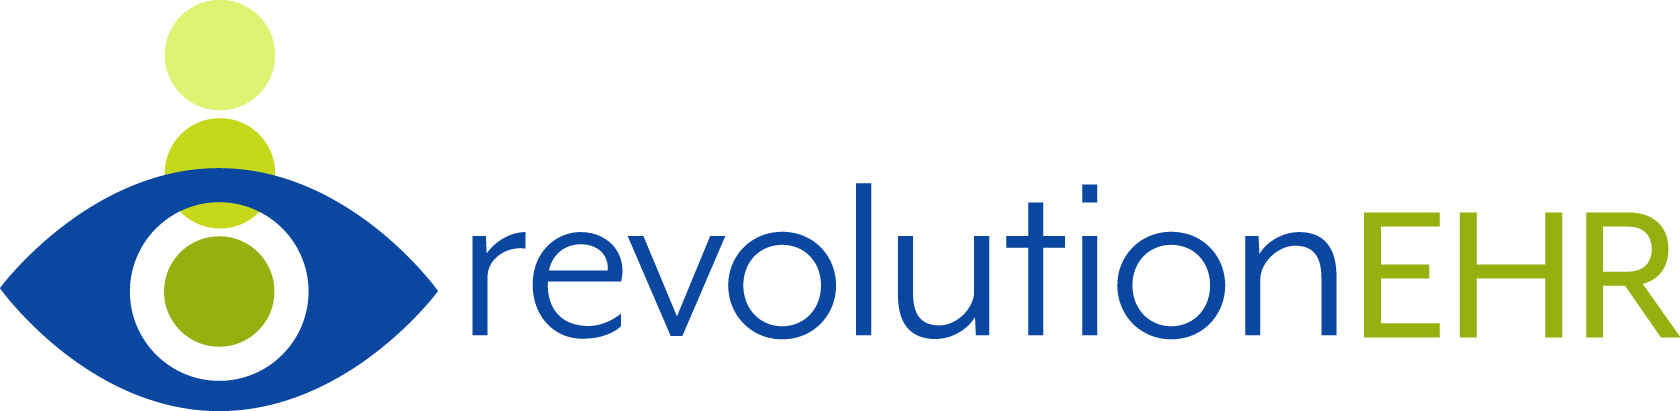 RevolutionEHR Help Center home page